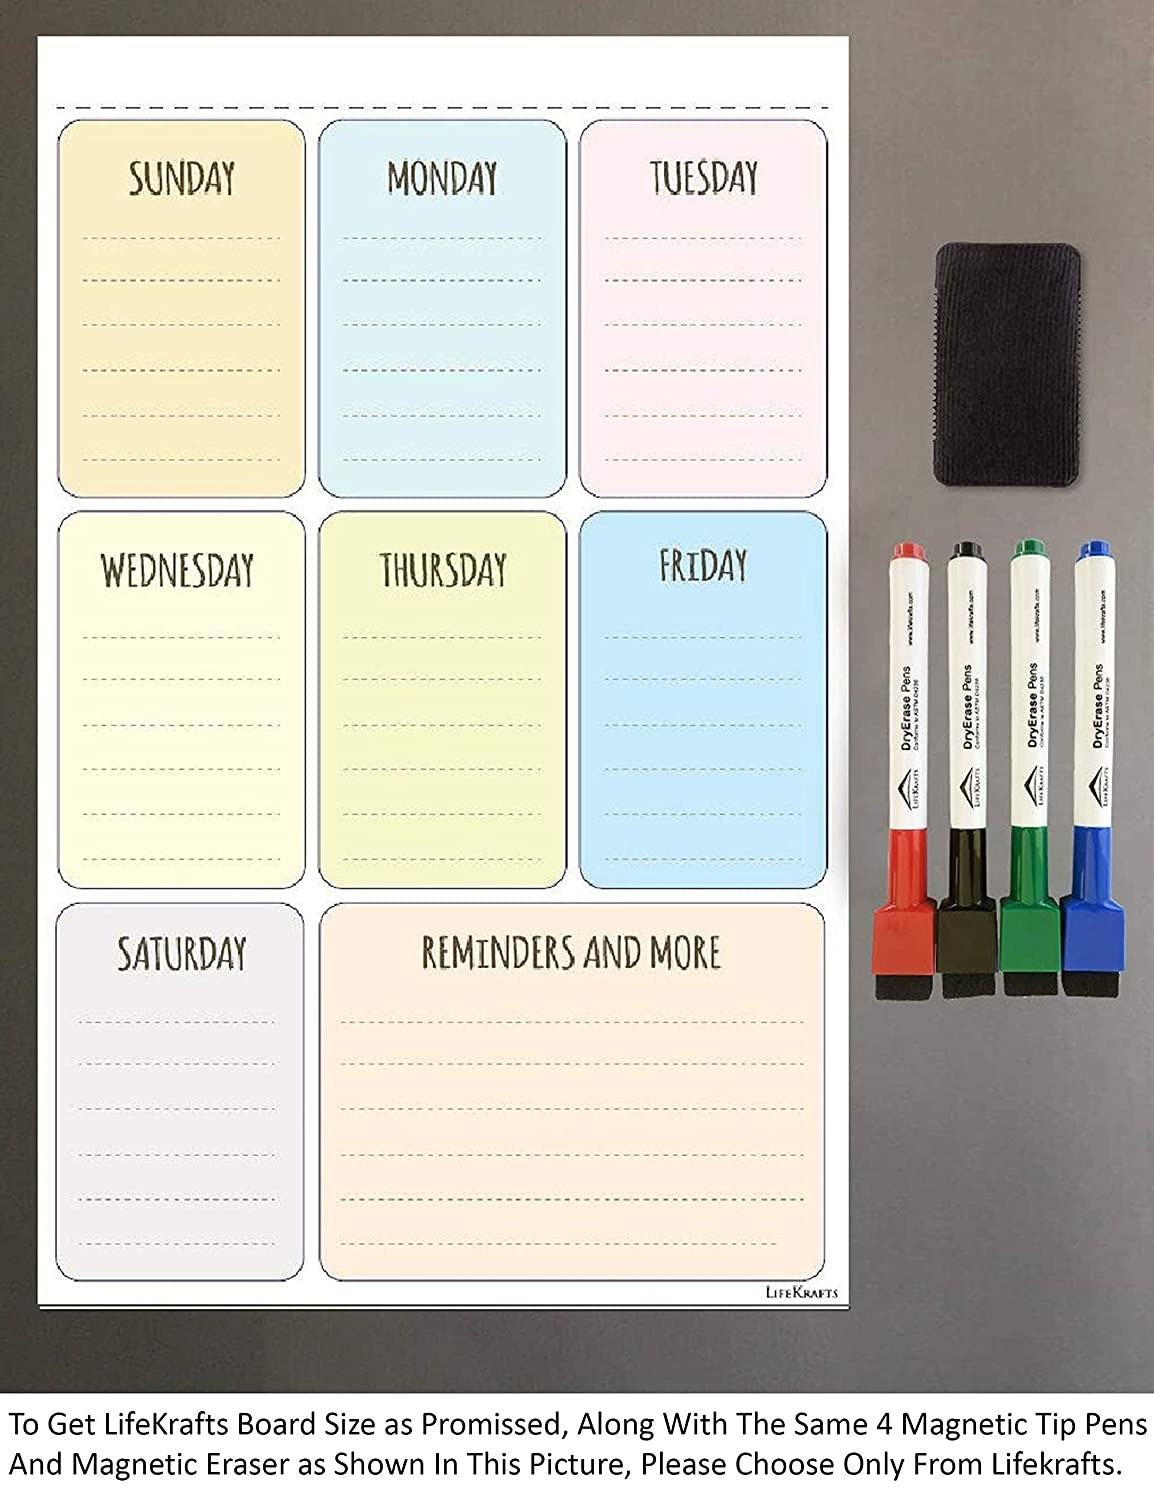 The dry erase sheet with columns for each day of the week, 4 markers, and a duster.